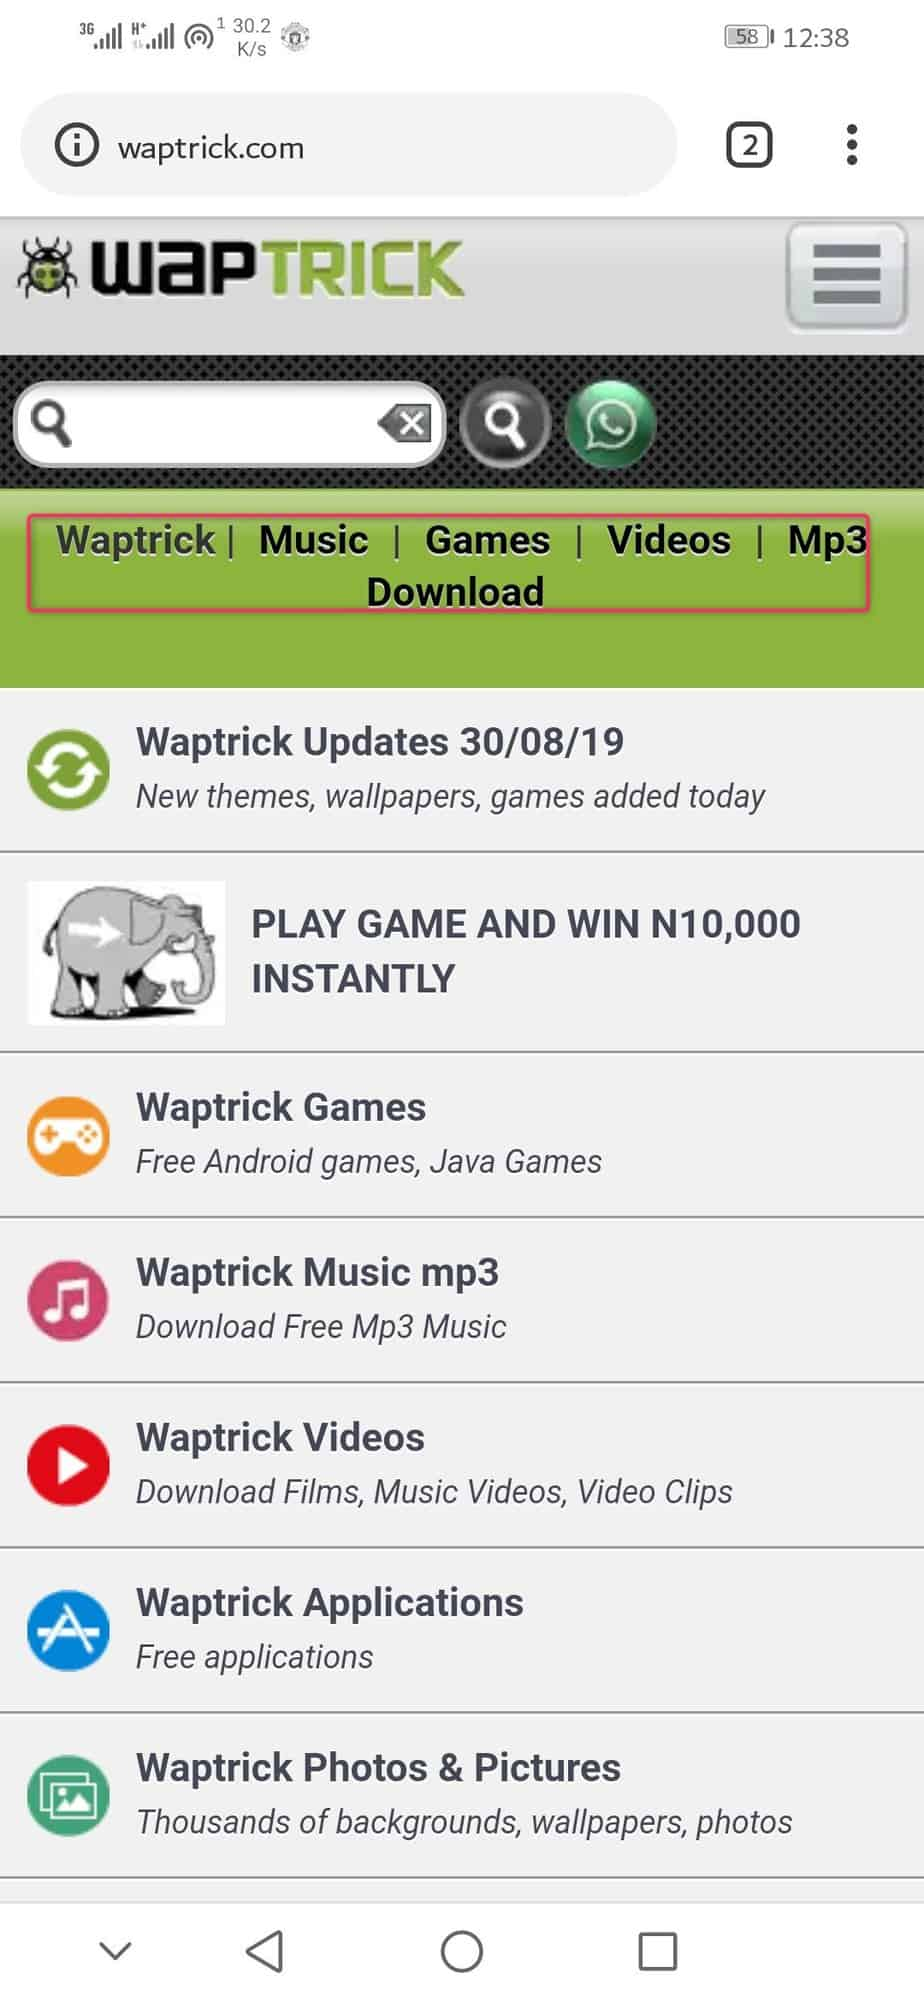 www waptrick com: Download Games, videos, MP4, 3gp - Gadgets